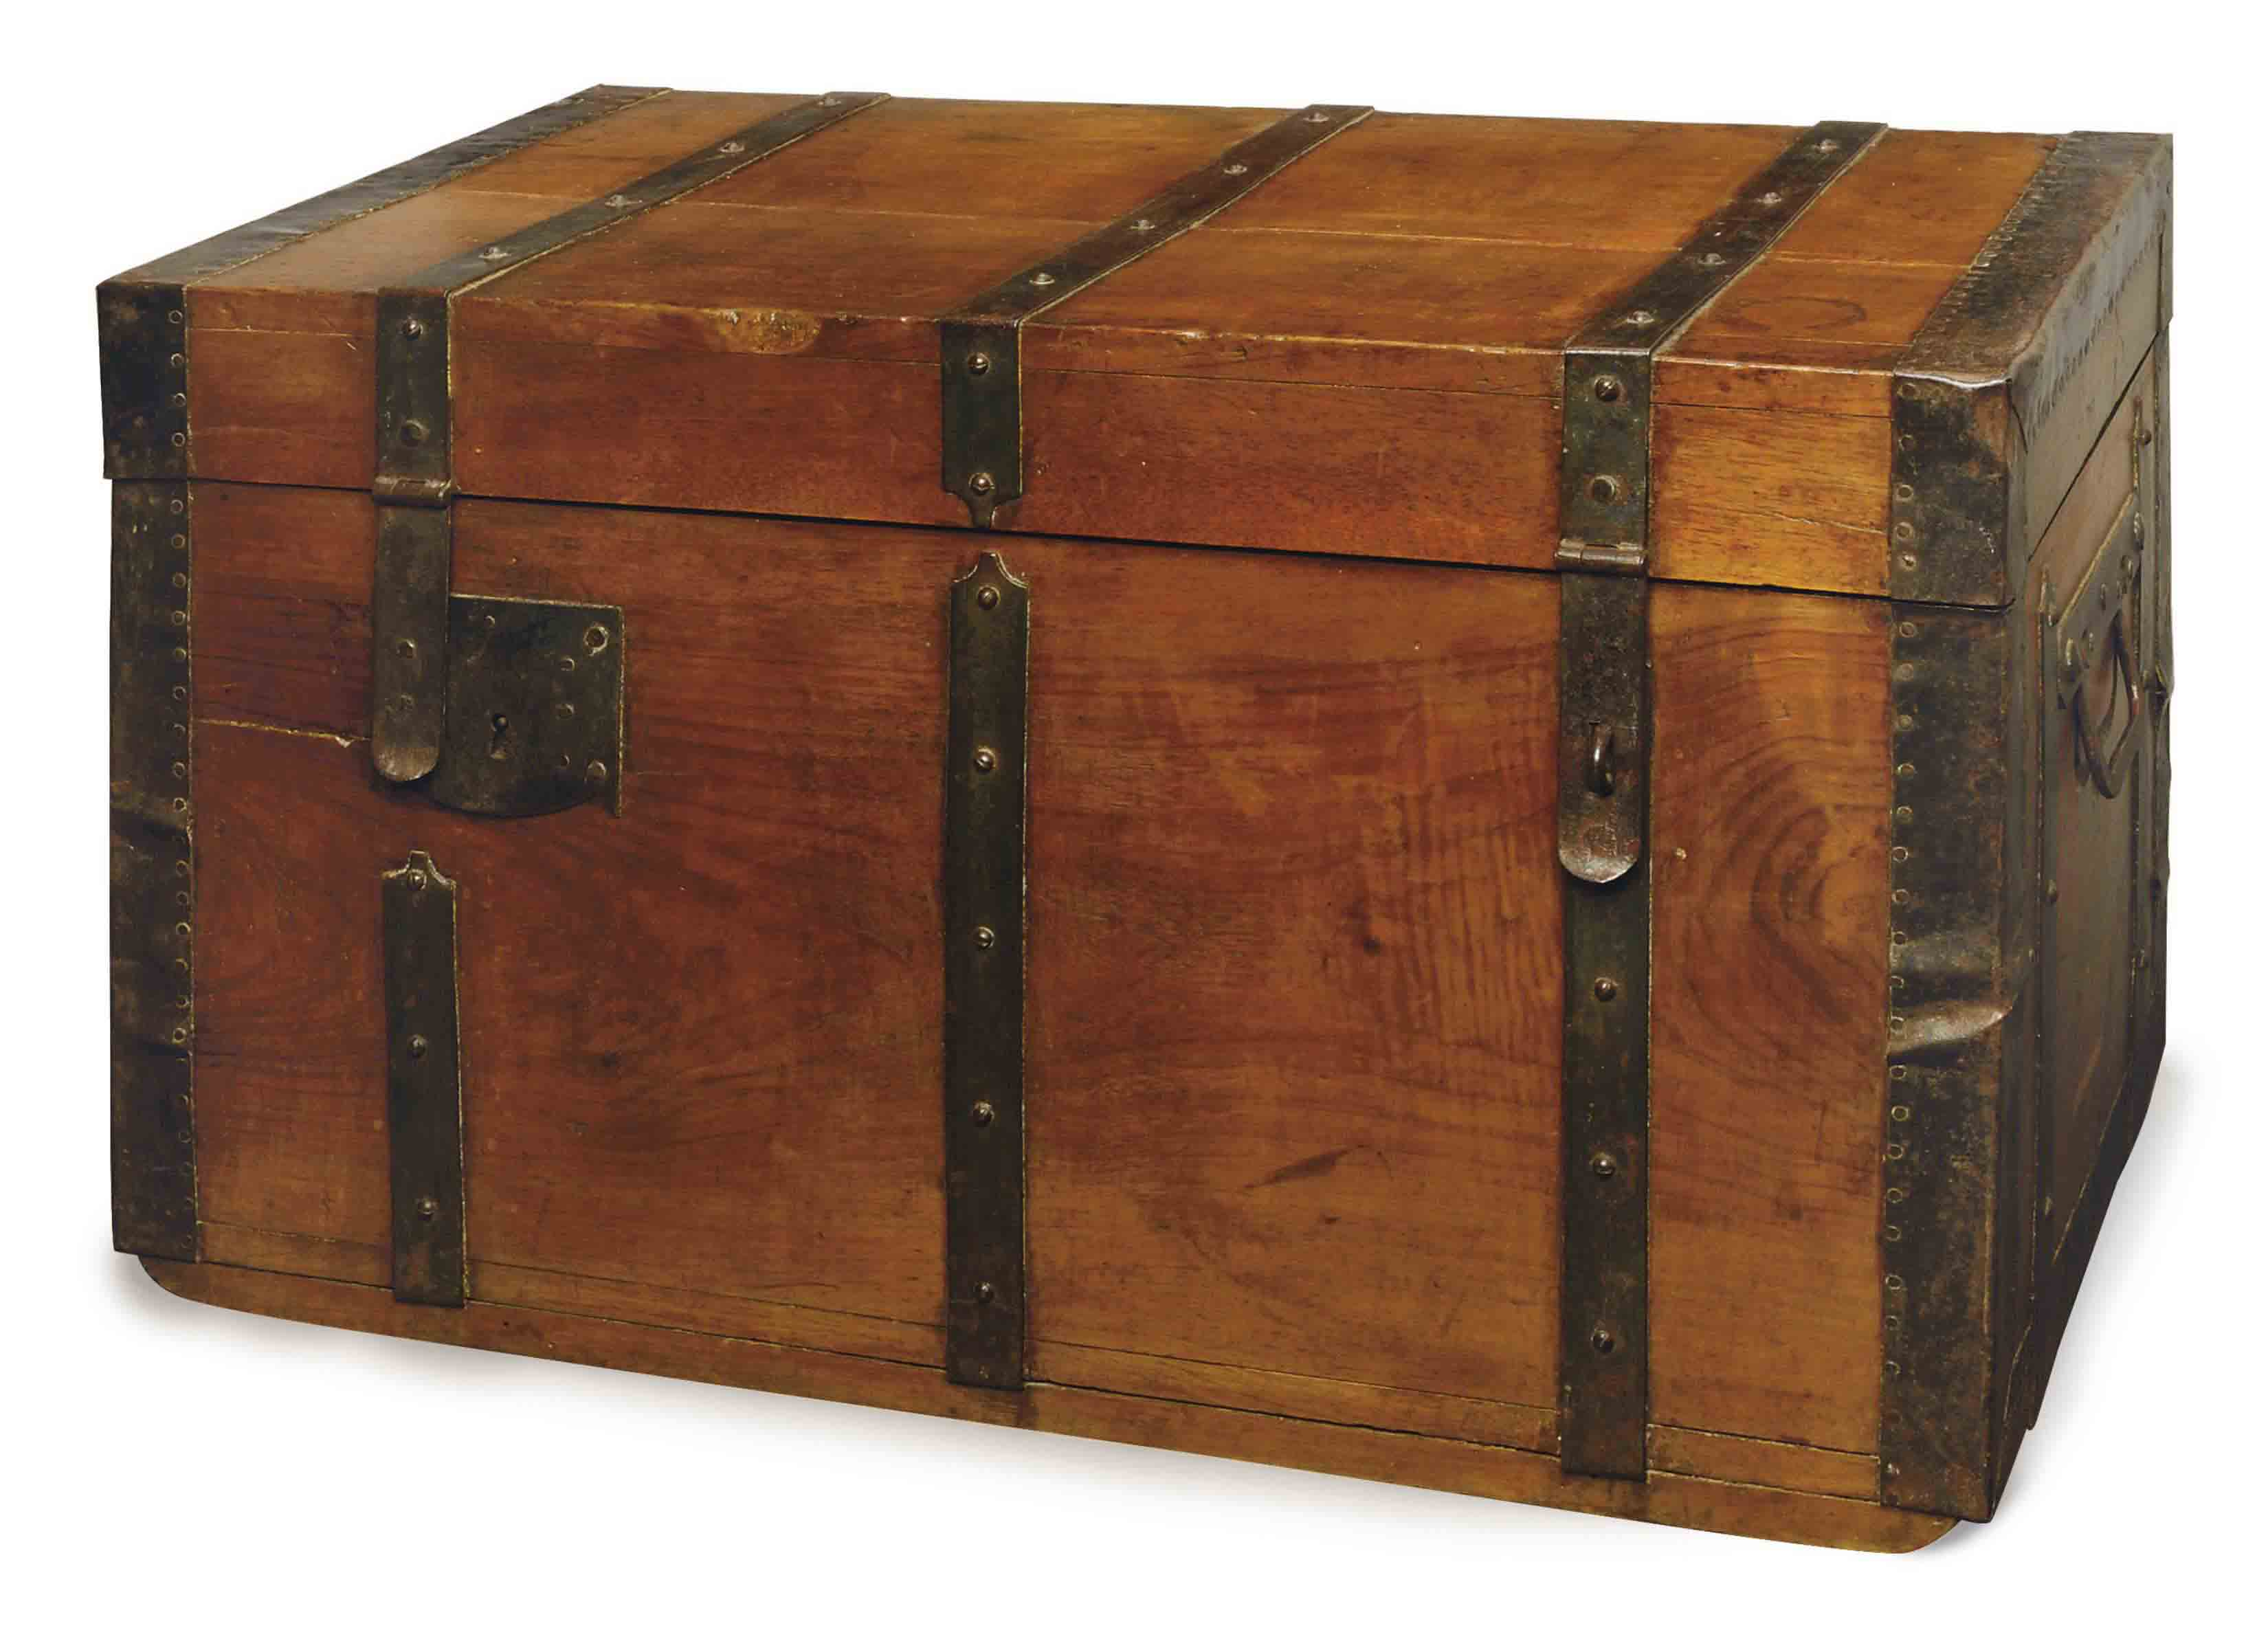 AN ITALIAN METAL-BOUND FRUITWOOD TRAVELLING TRUNK,